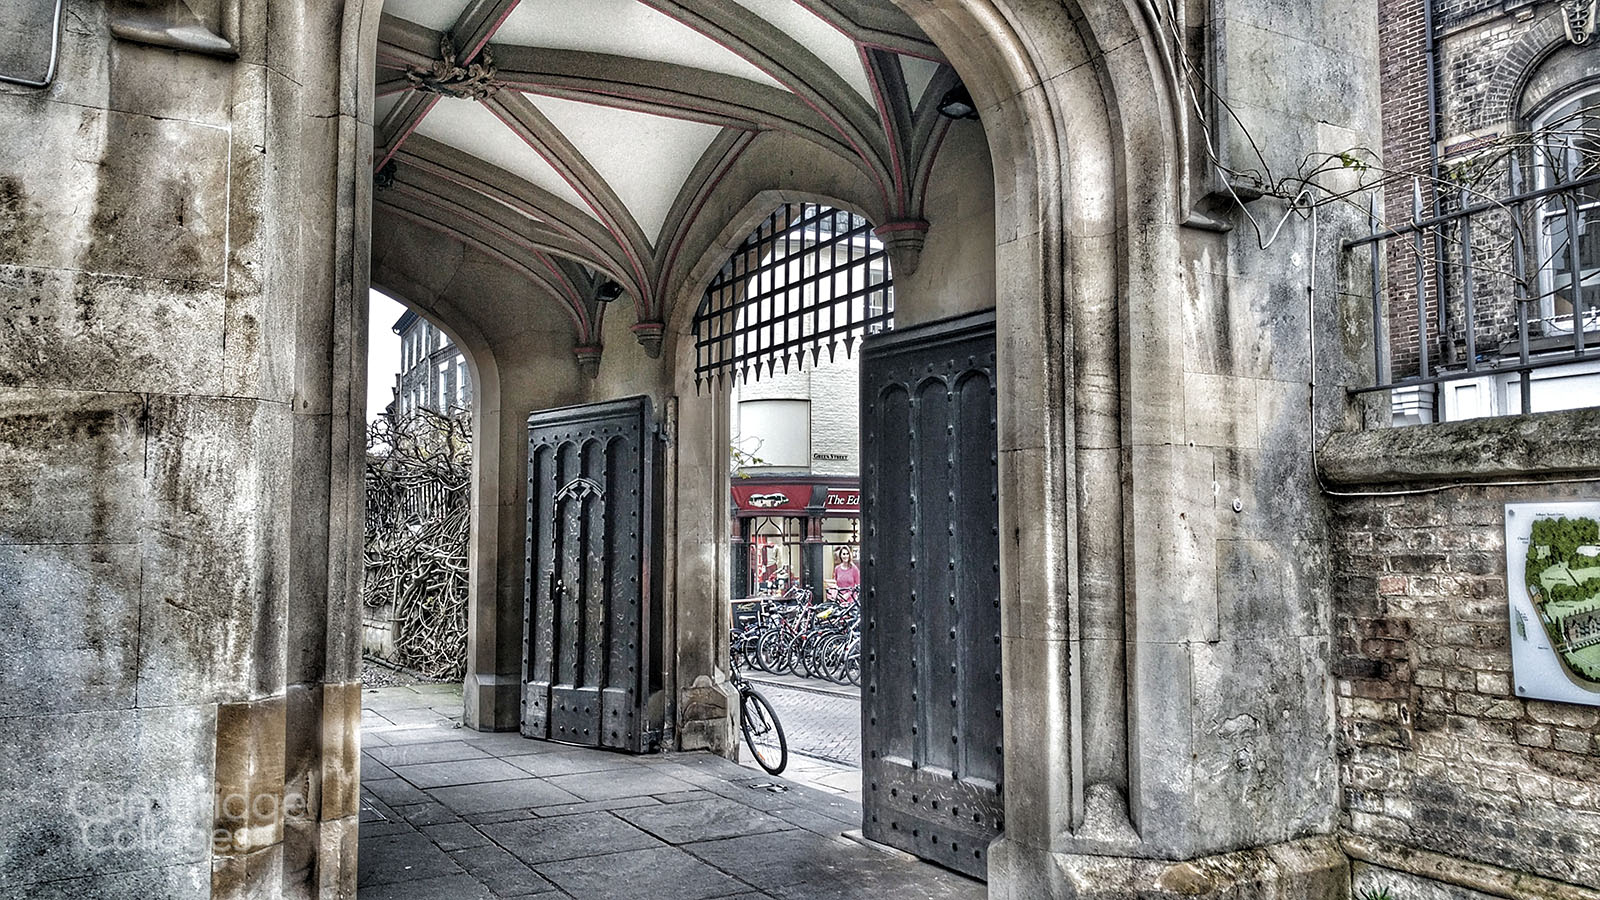 The gates of Sidney Sussex college, looking out onto Sidney Street